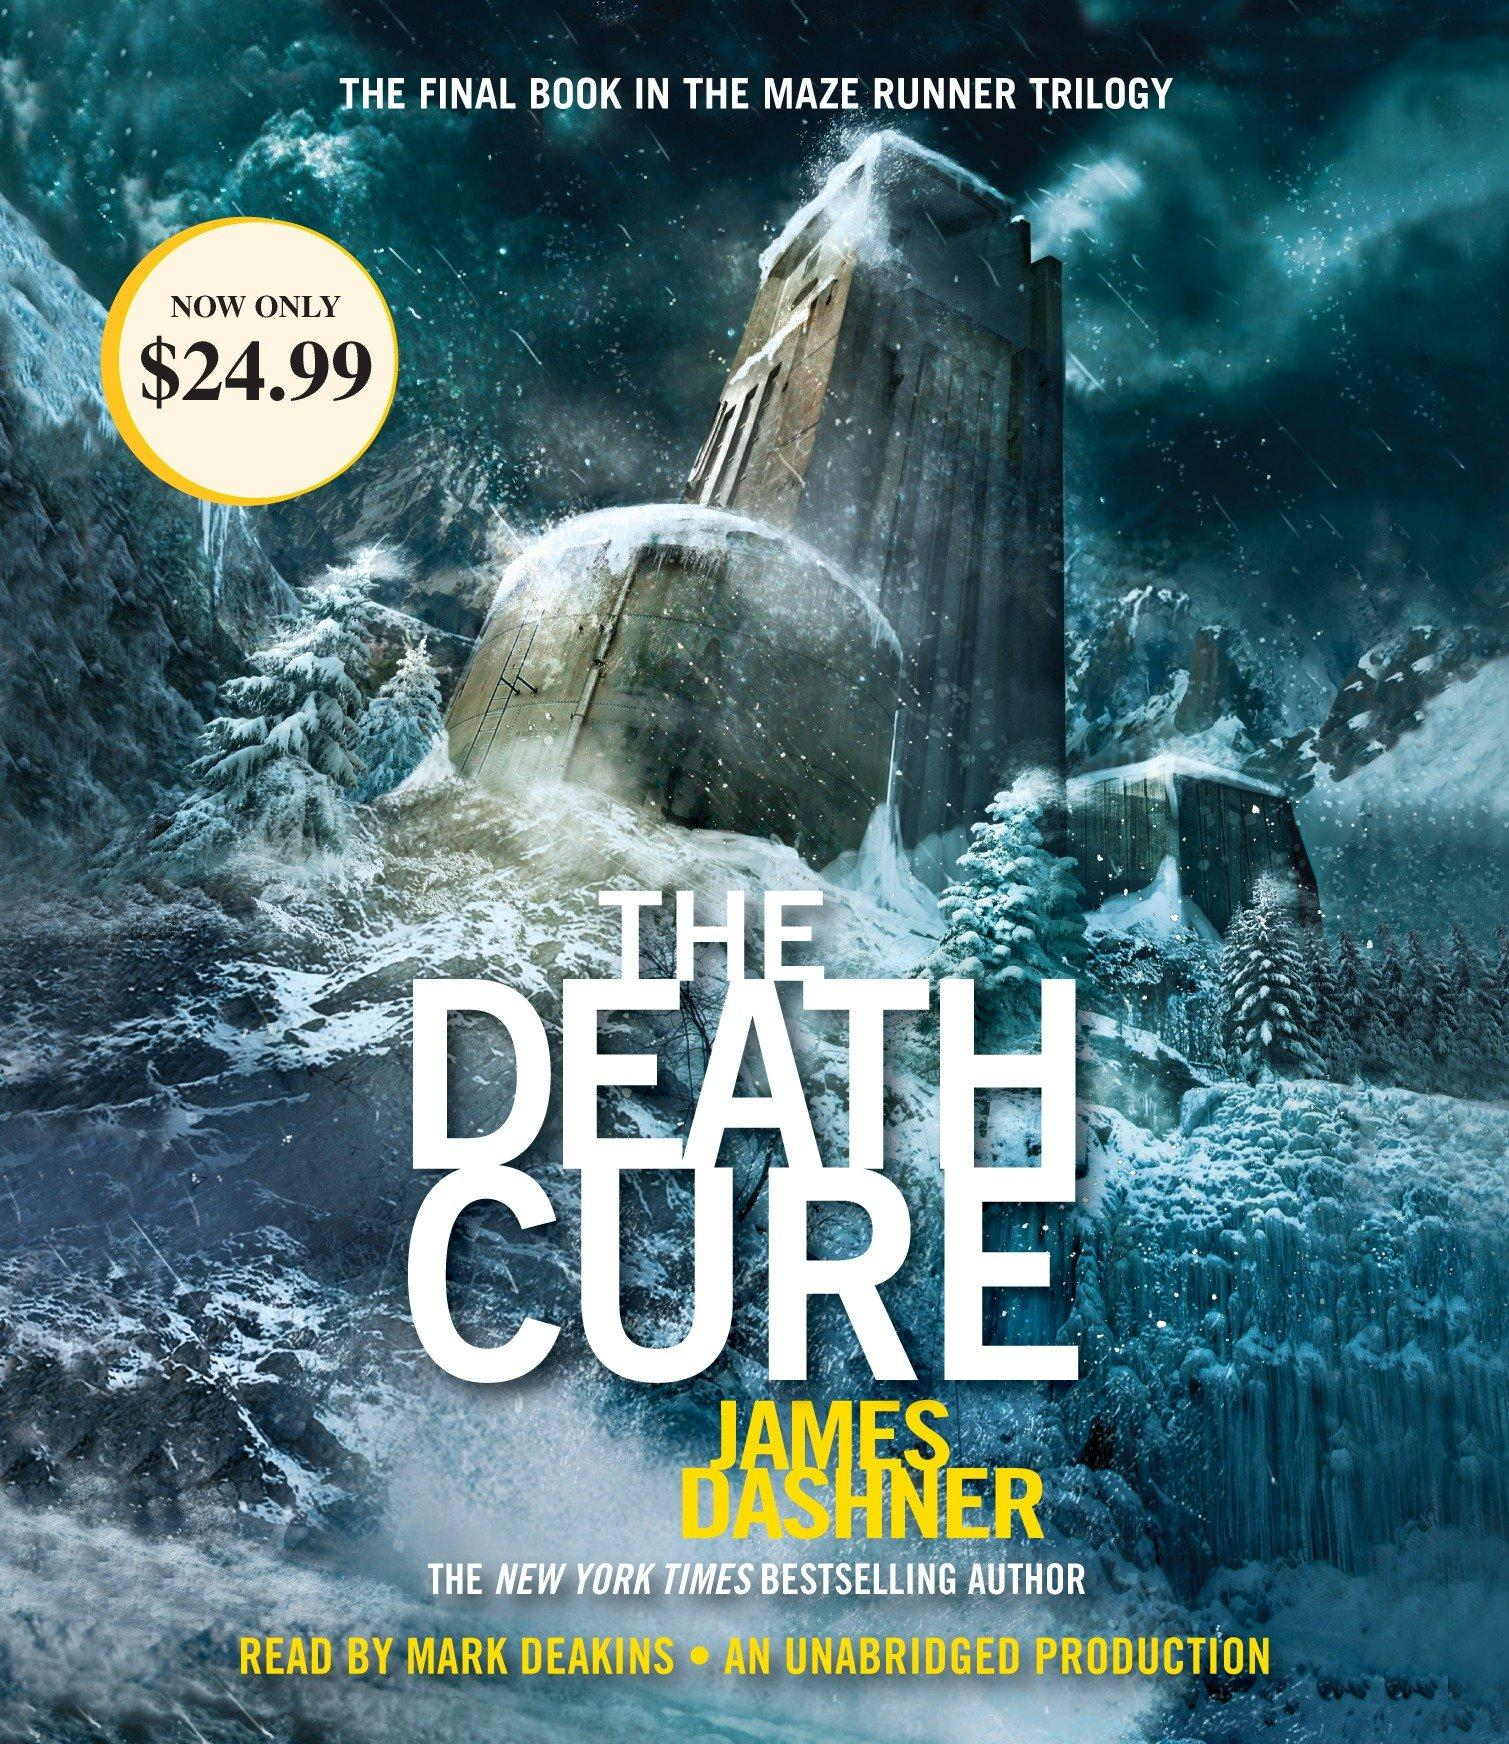 The Maze Runner 3: The Death Cure James Dashner